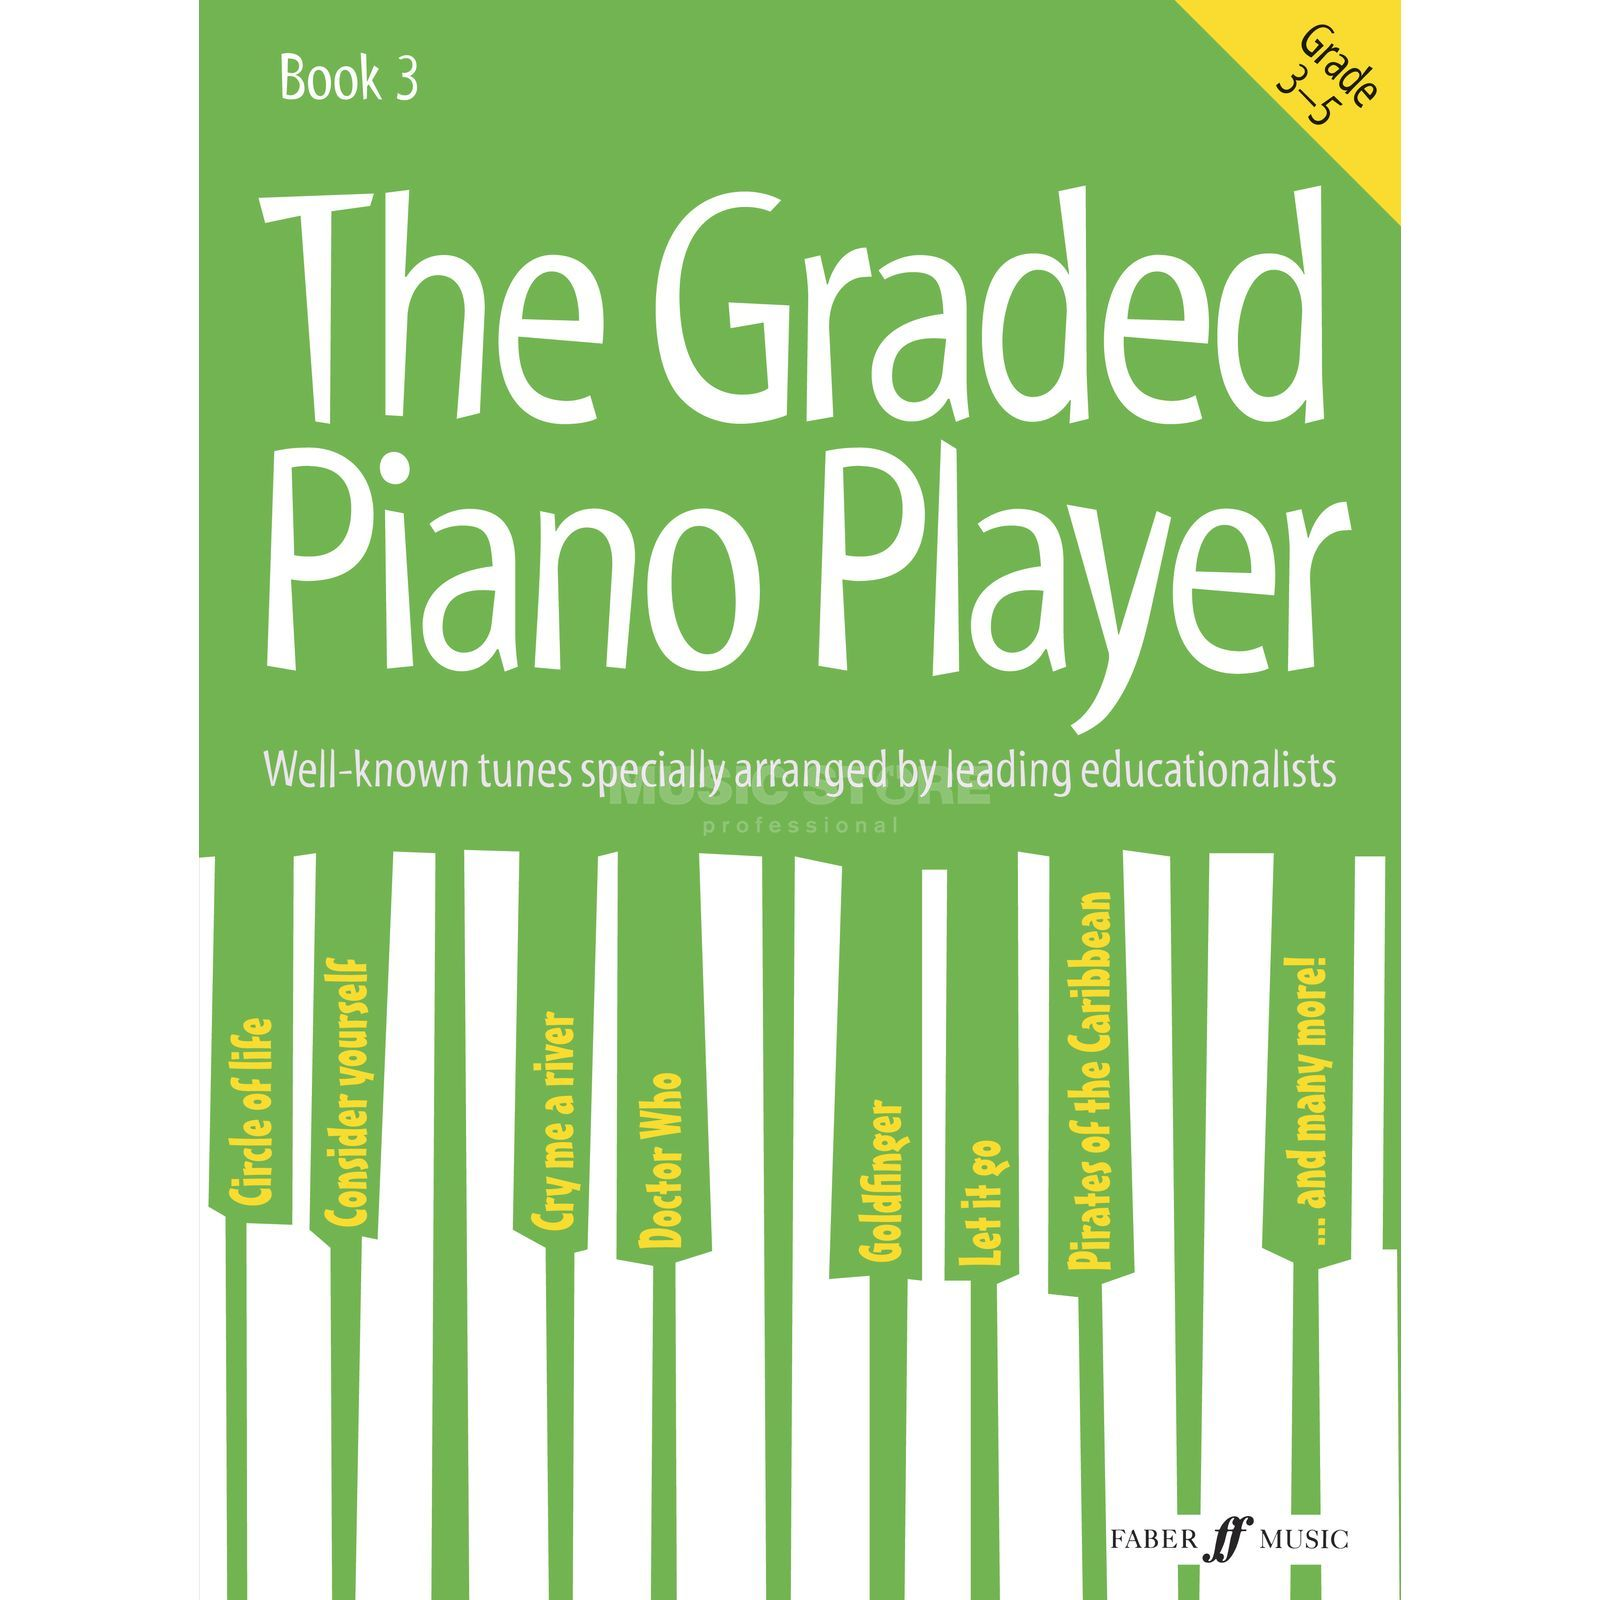 Faber Music The Graded Piano Player: Grades 3-5 Produktbild